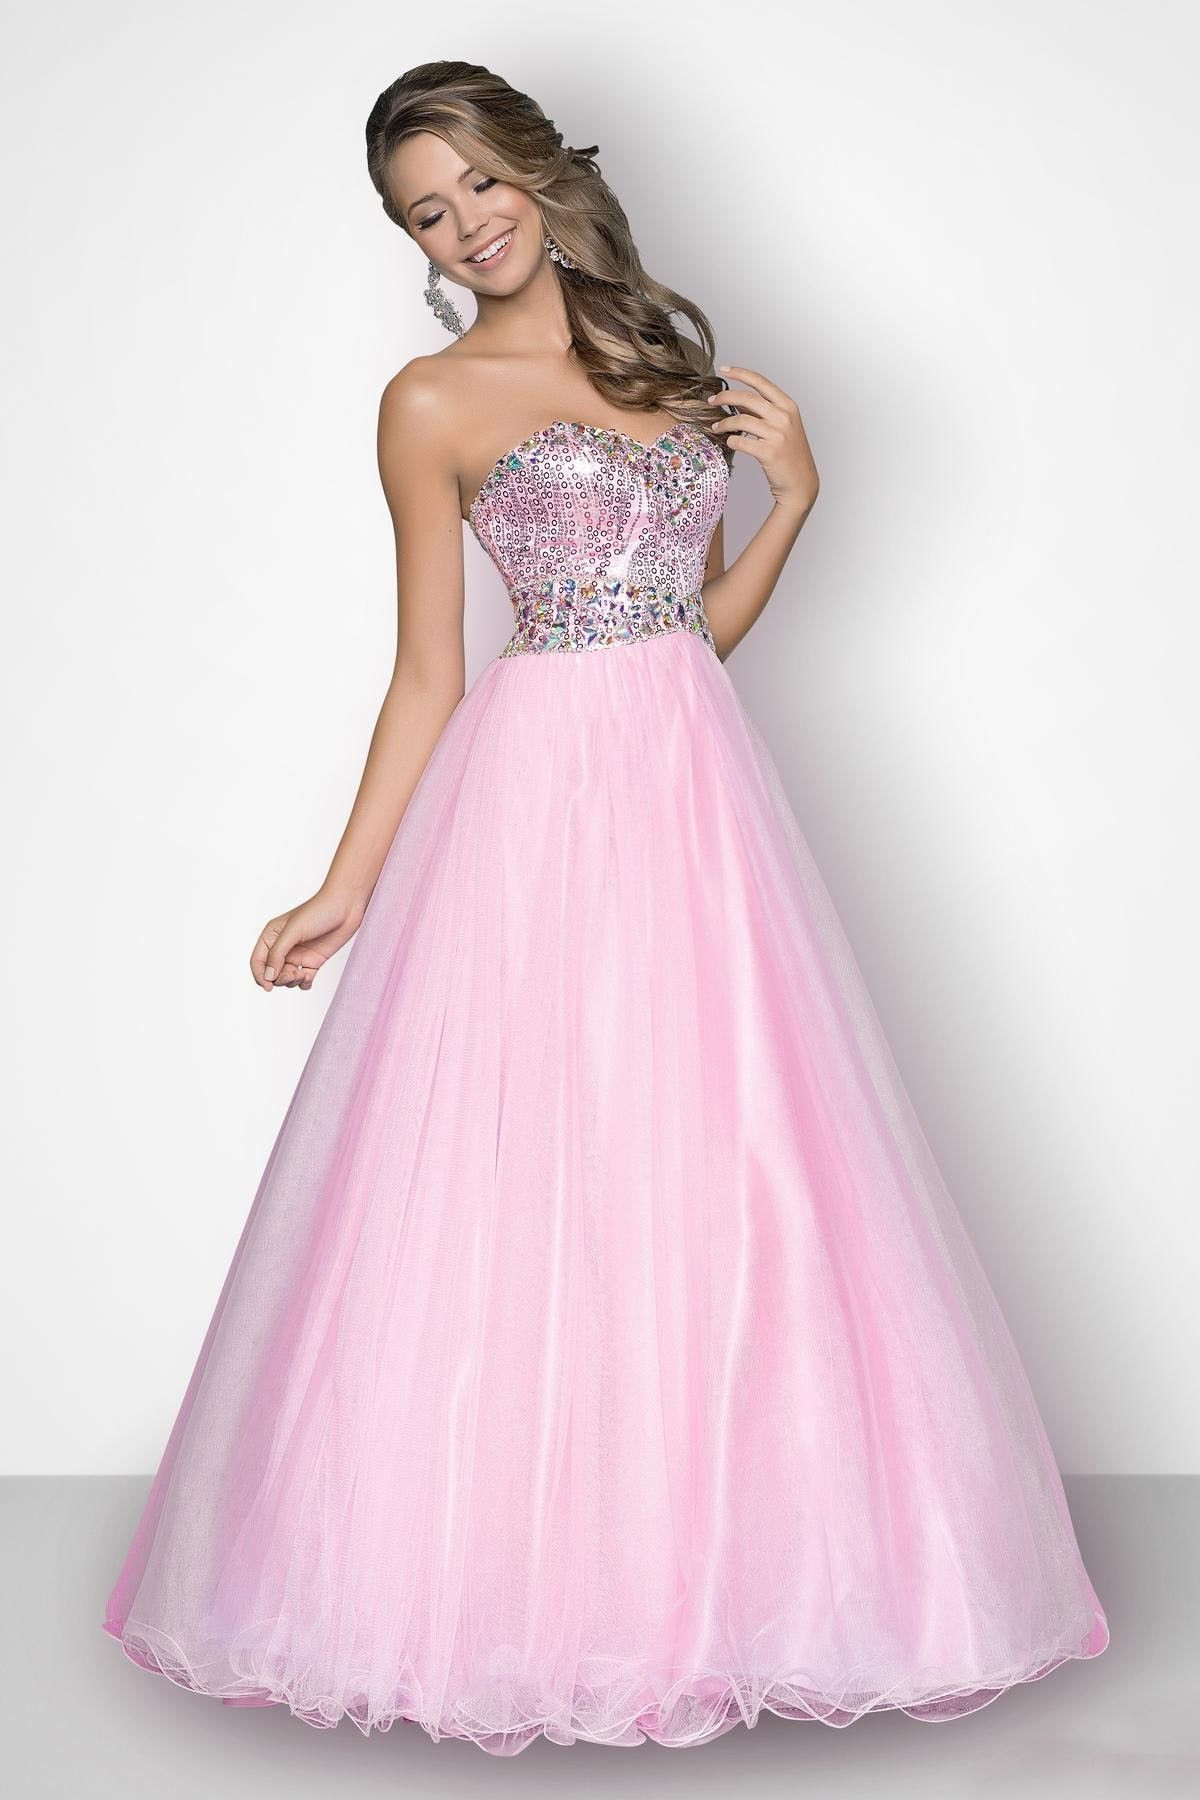 Ball gown prom dresses 2014 - Silver And Pink Ball Gown Prom Dress I Would Totally Wear This One